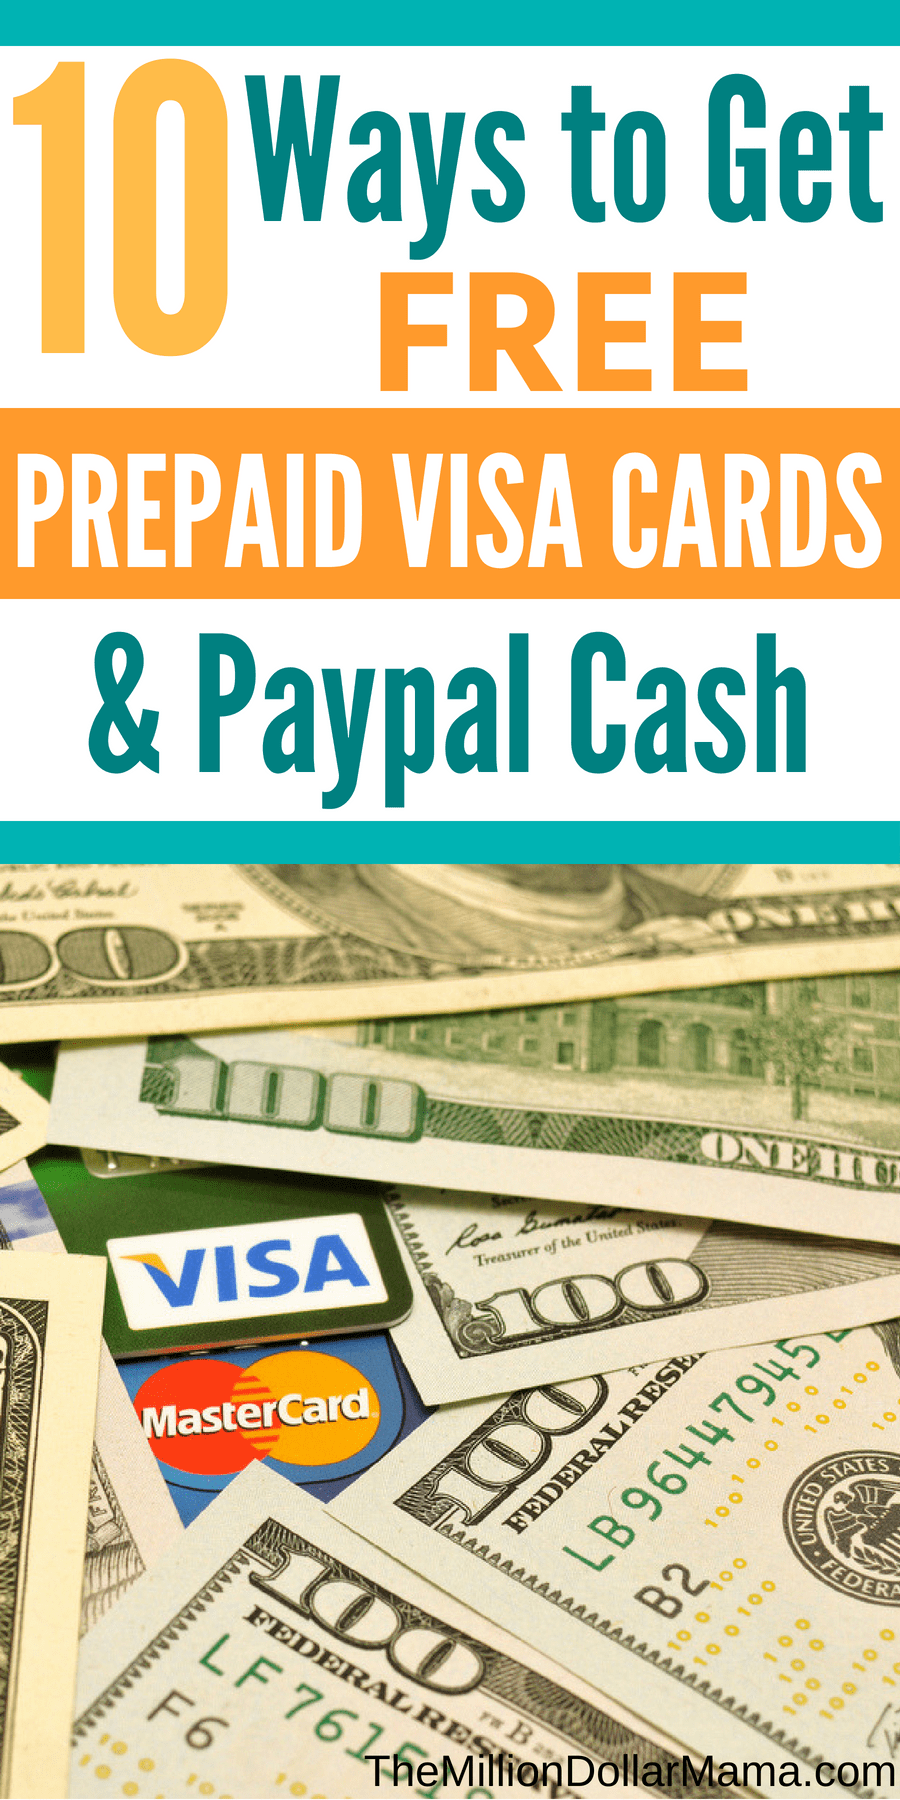 Free prepaid cards like Visa and Amazon gift cards are one of my favorite side hustles to make money from home. Here are 10 of my favorite ways to earn free prepaid gift cards and Paypal cash from home!